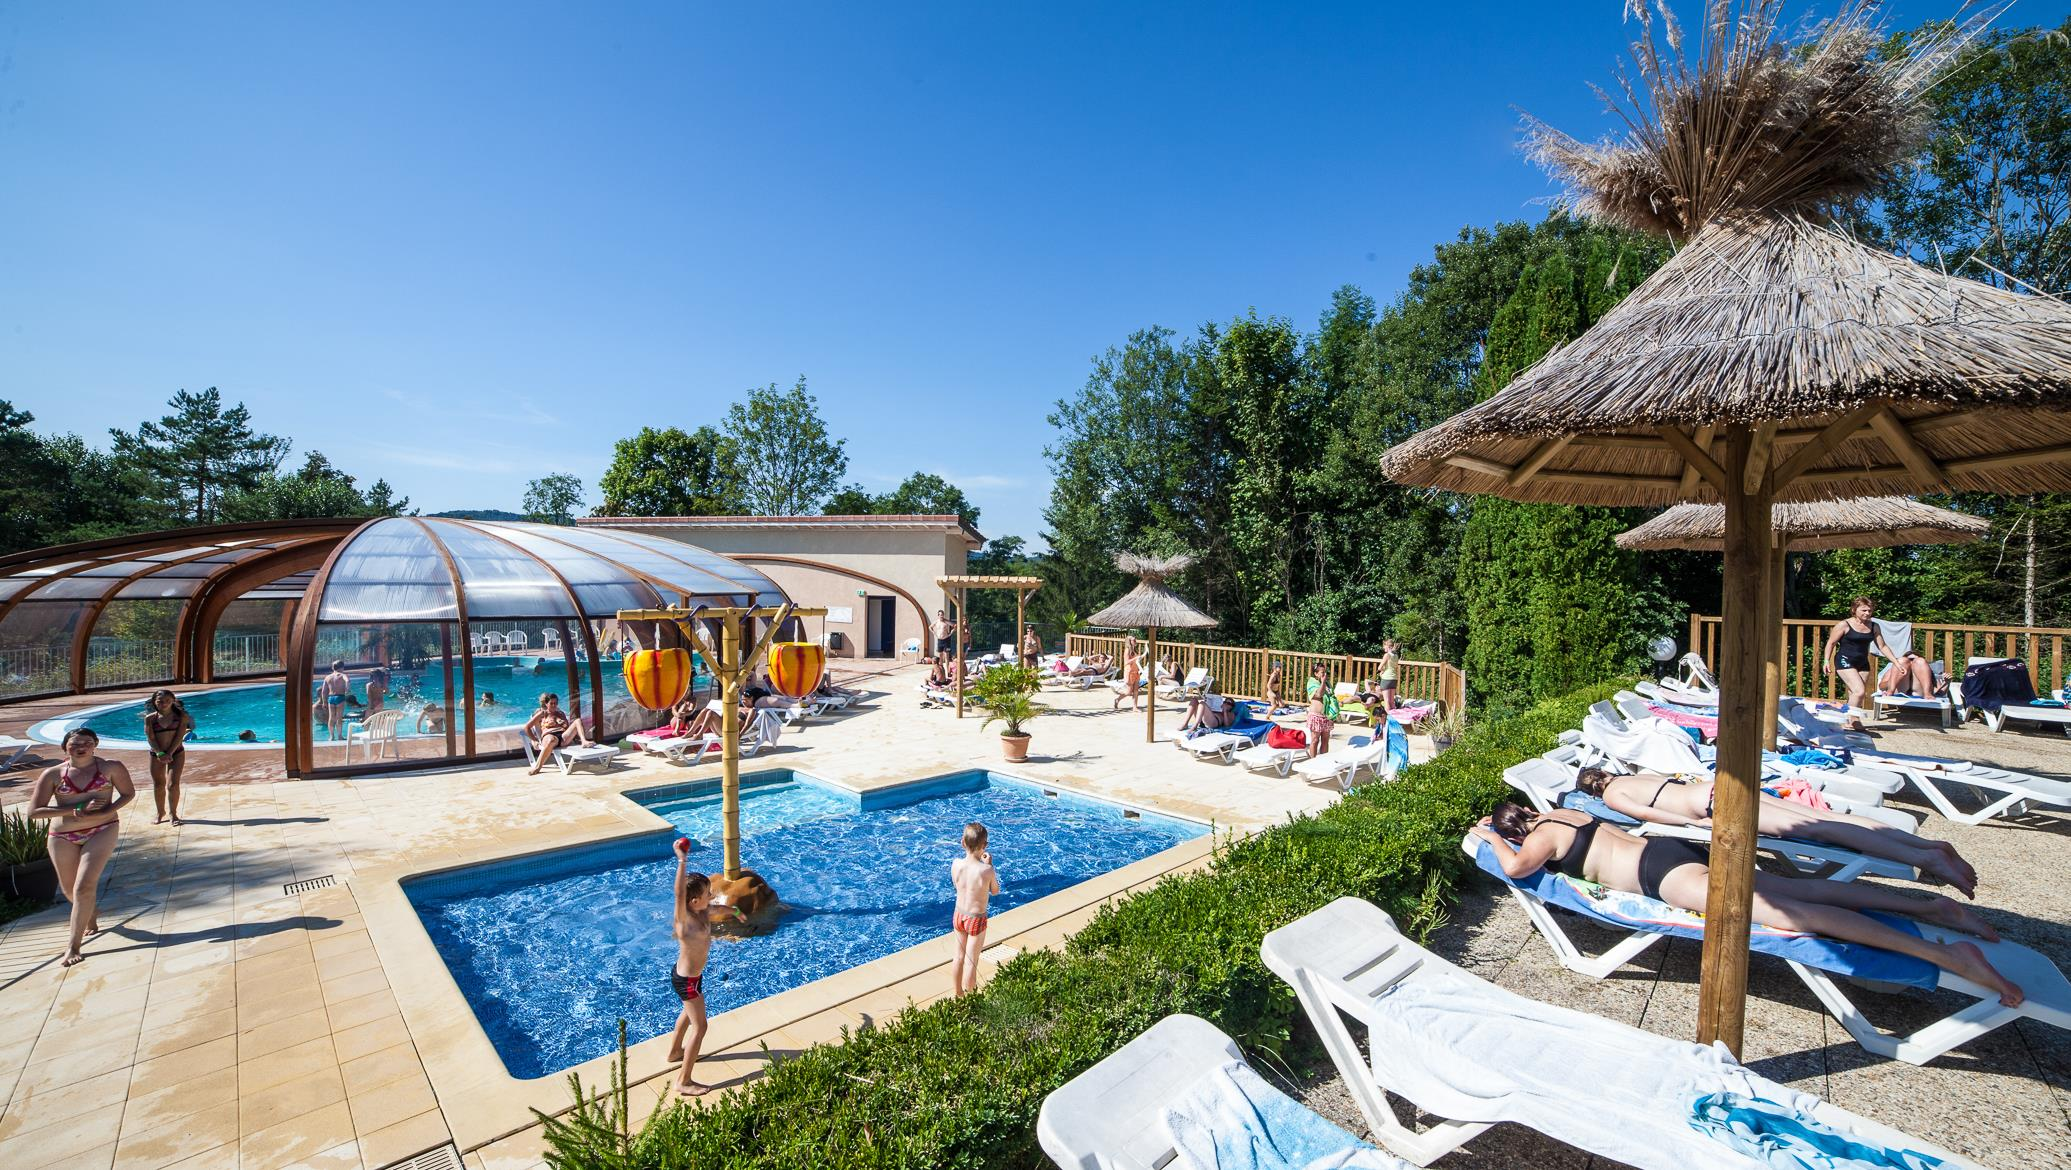 Etablissement Camping le Moulin - Patornay